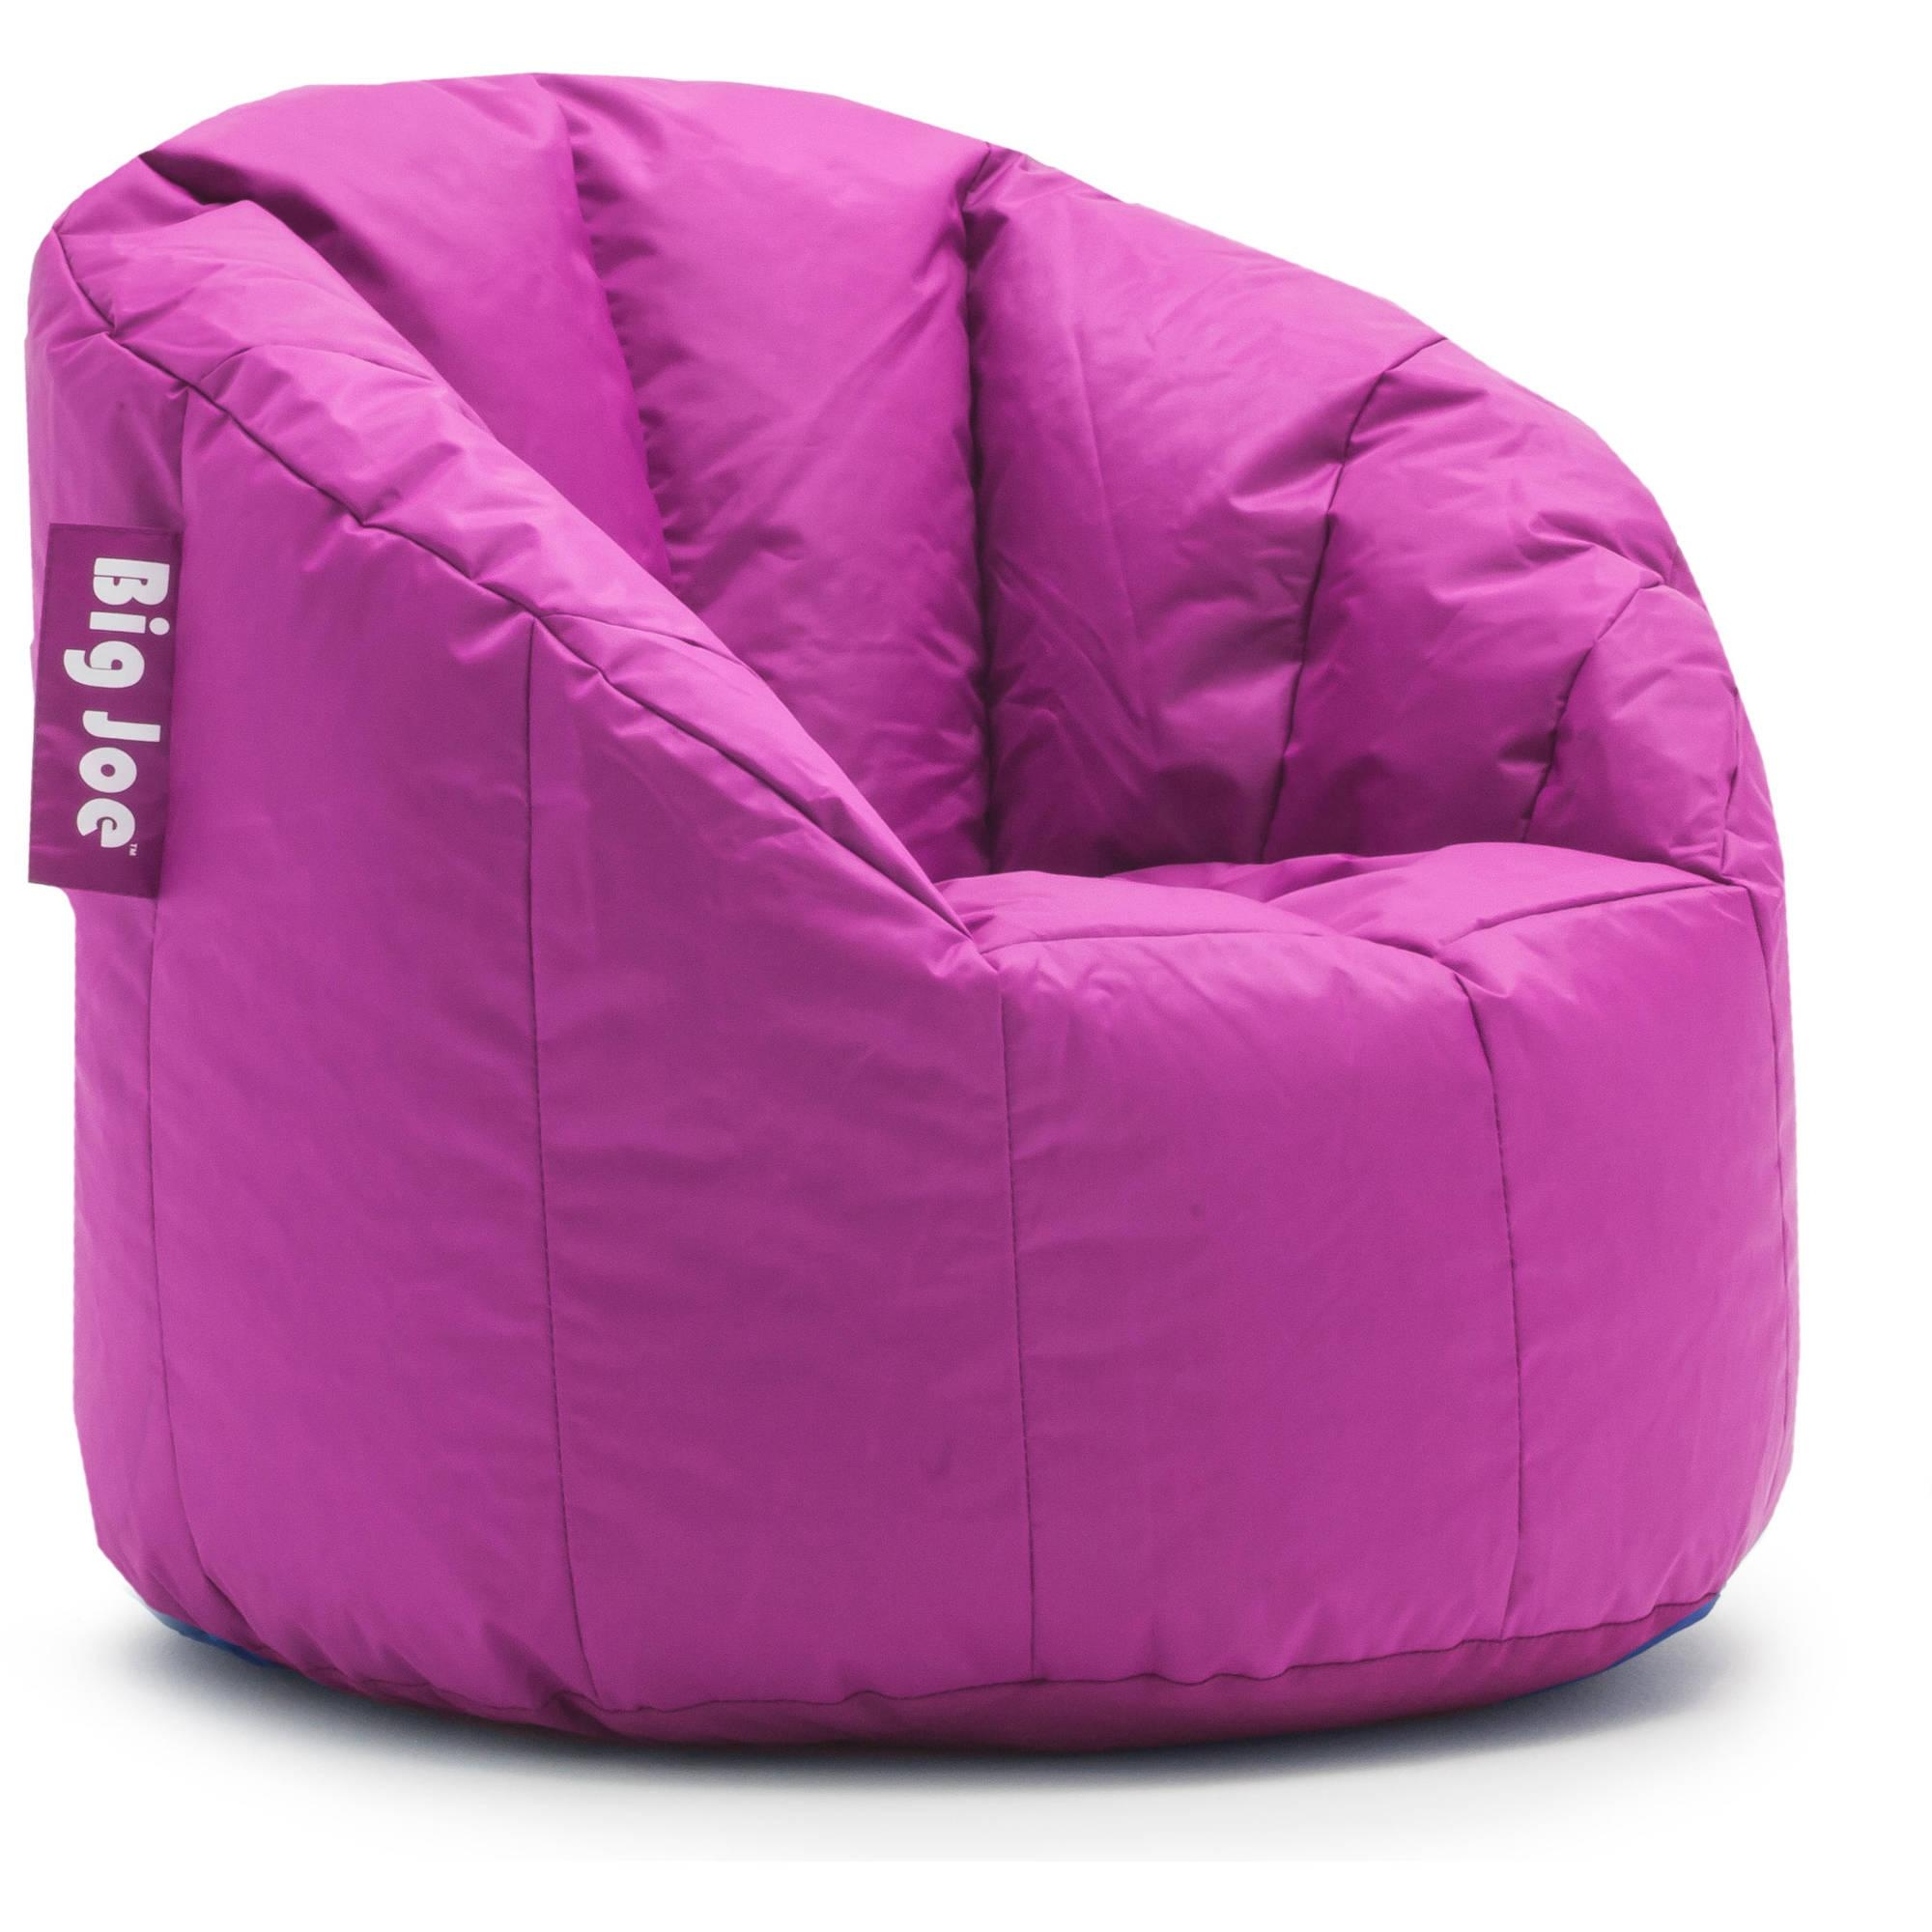 Furniture & Sofa: Fascinating Big Joe Lumin Bean Bag Chair With Intended For Big Joe Sofas (Image 17 of 20)